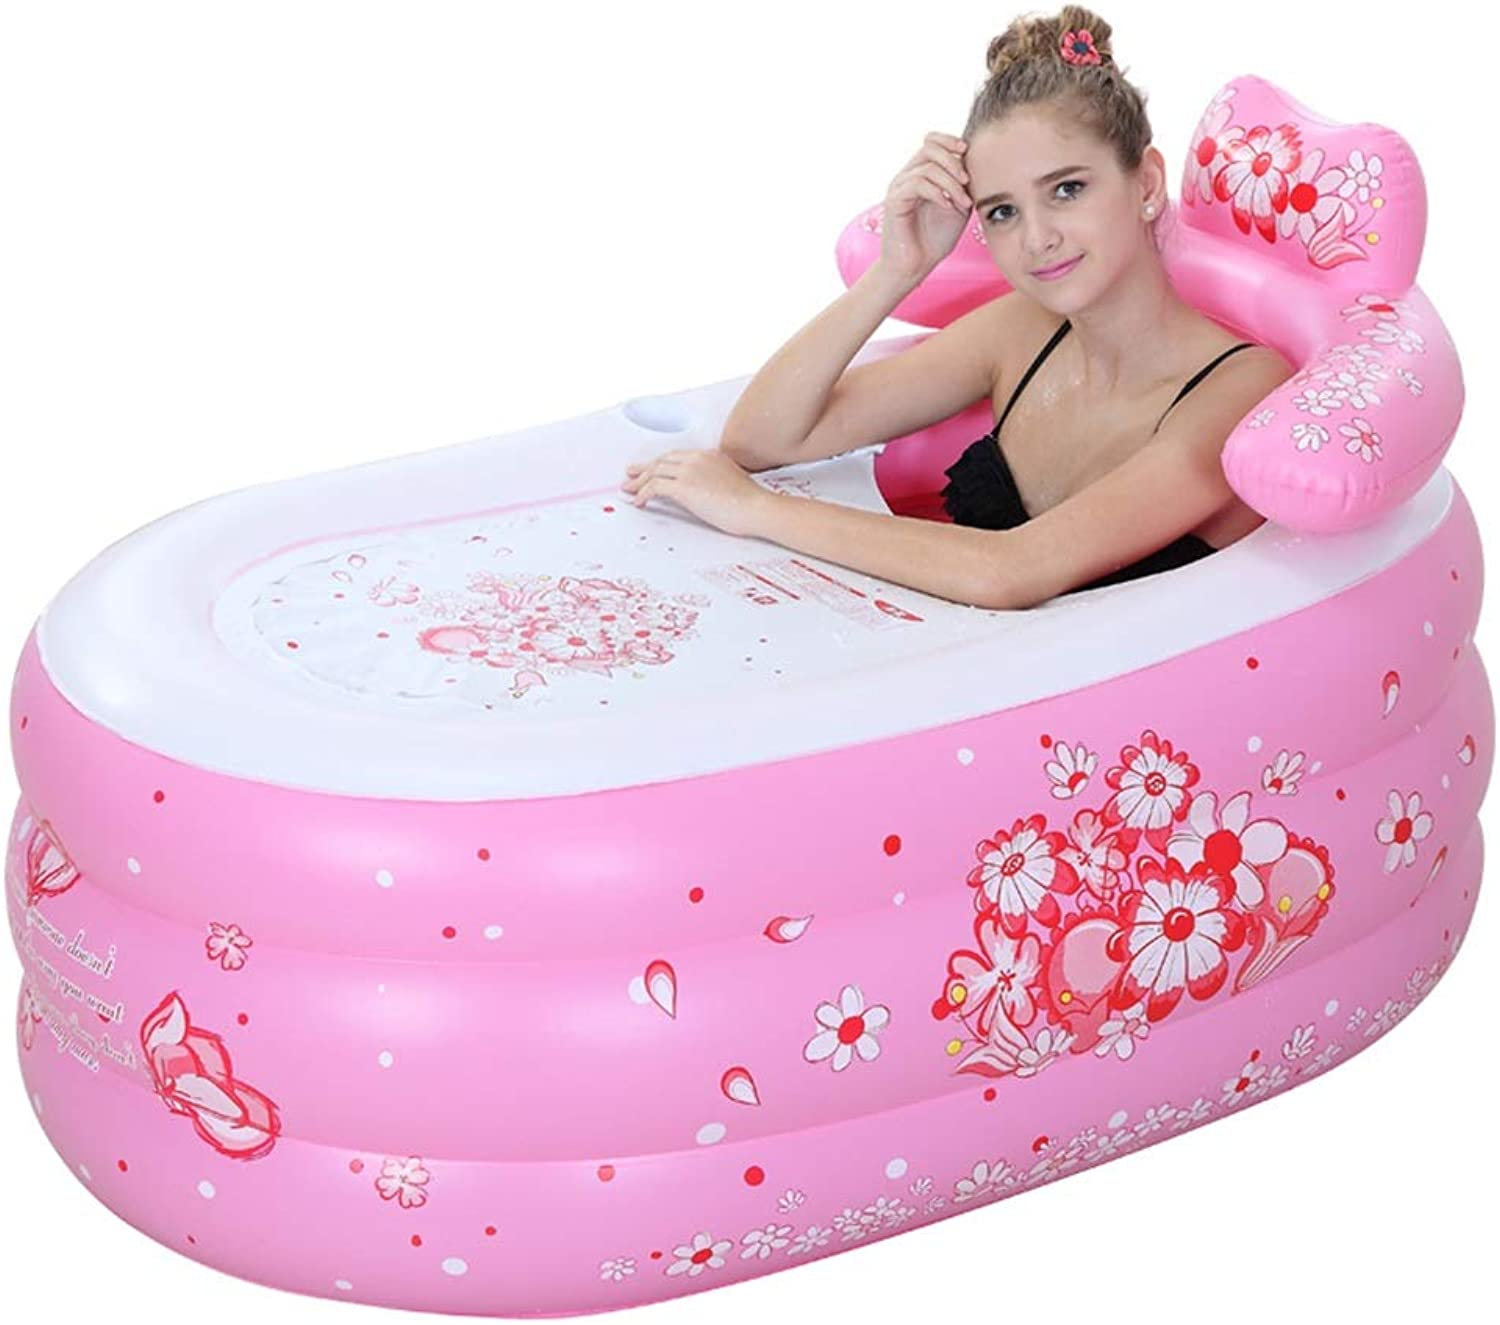 Meters Inflatable Bathtub   Folding Bathtub Thick Plastic Bath Tub with Pillow - Keep Warm, Ideal for Indoor & Outdoor Use